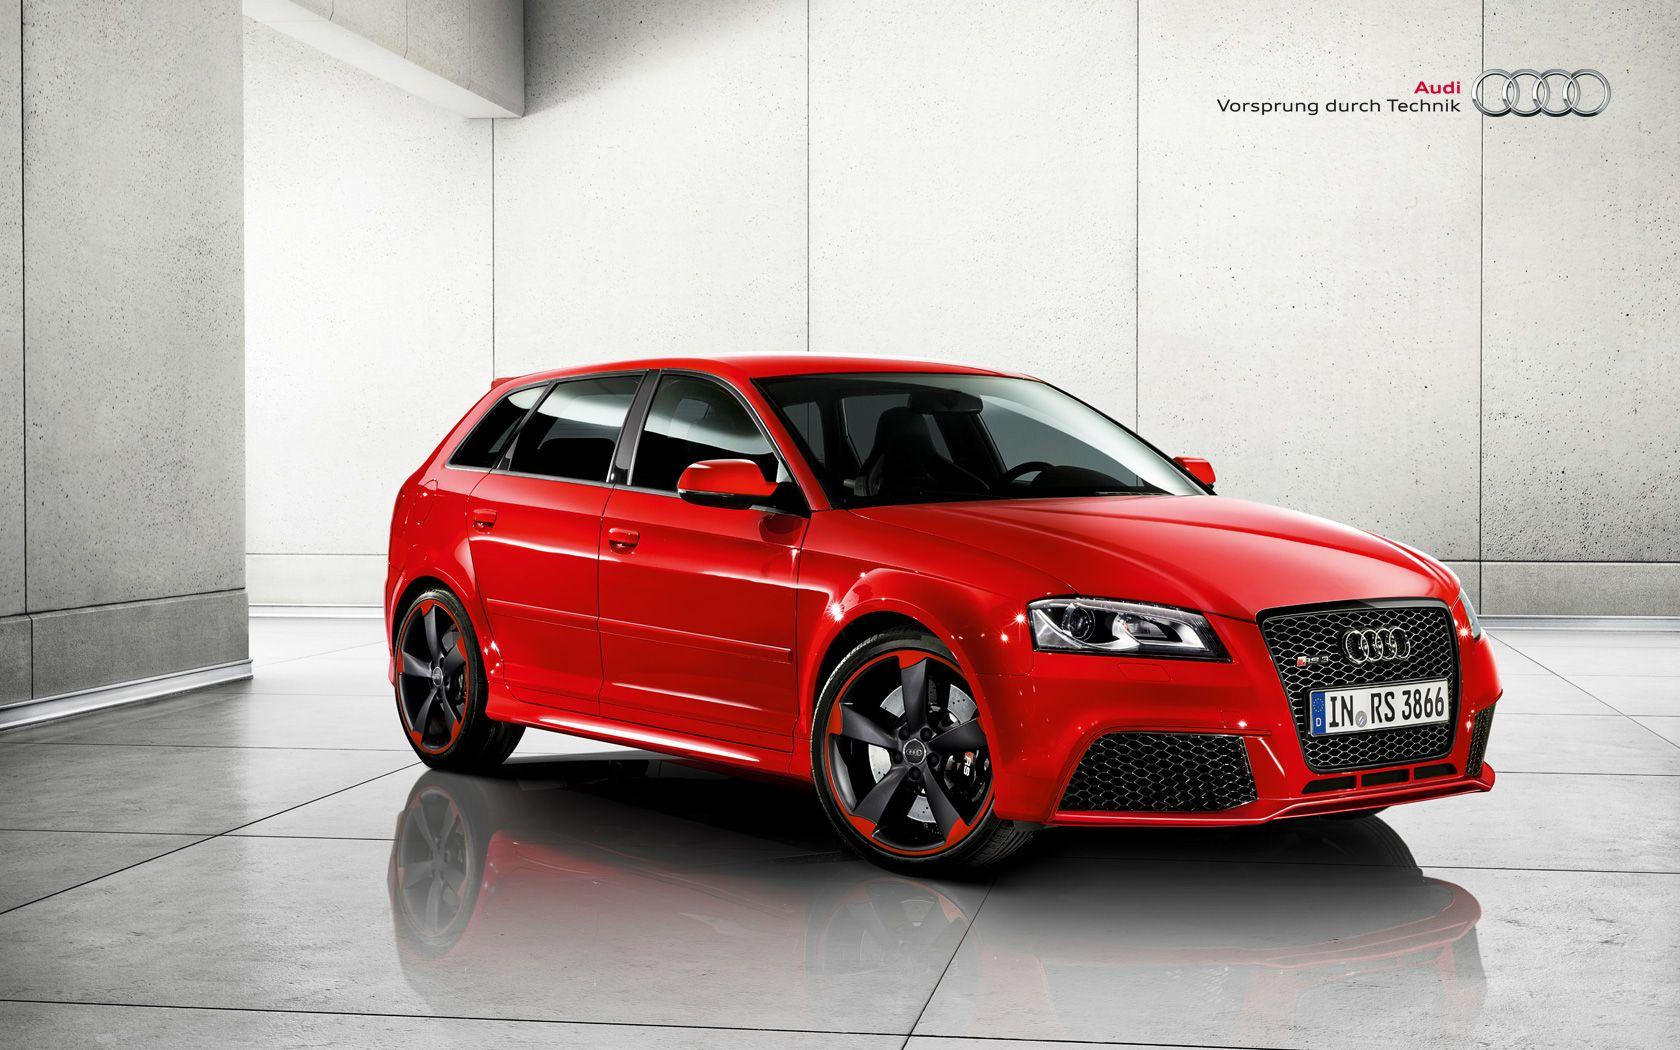 Audi RS3 wallpapers, Vehicles, HQ Audi RS3 pictures